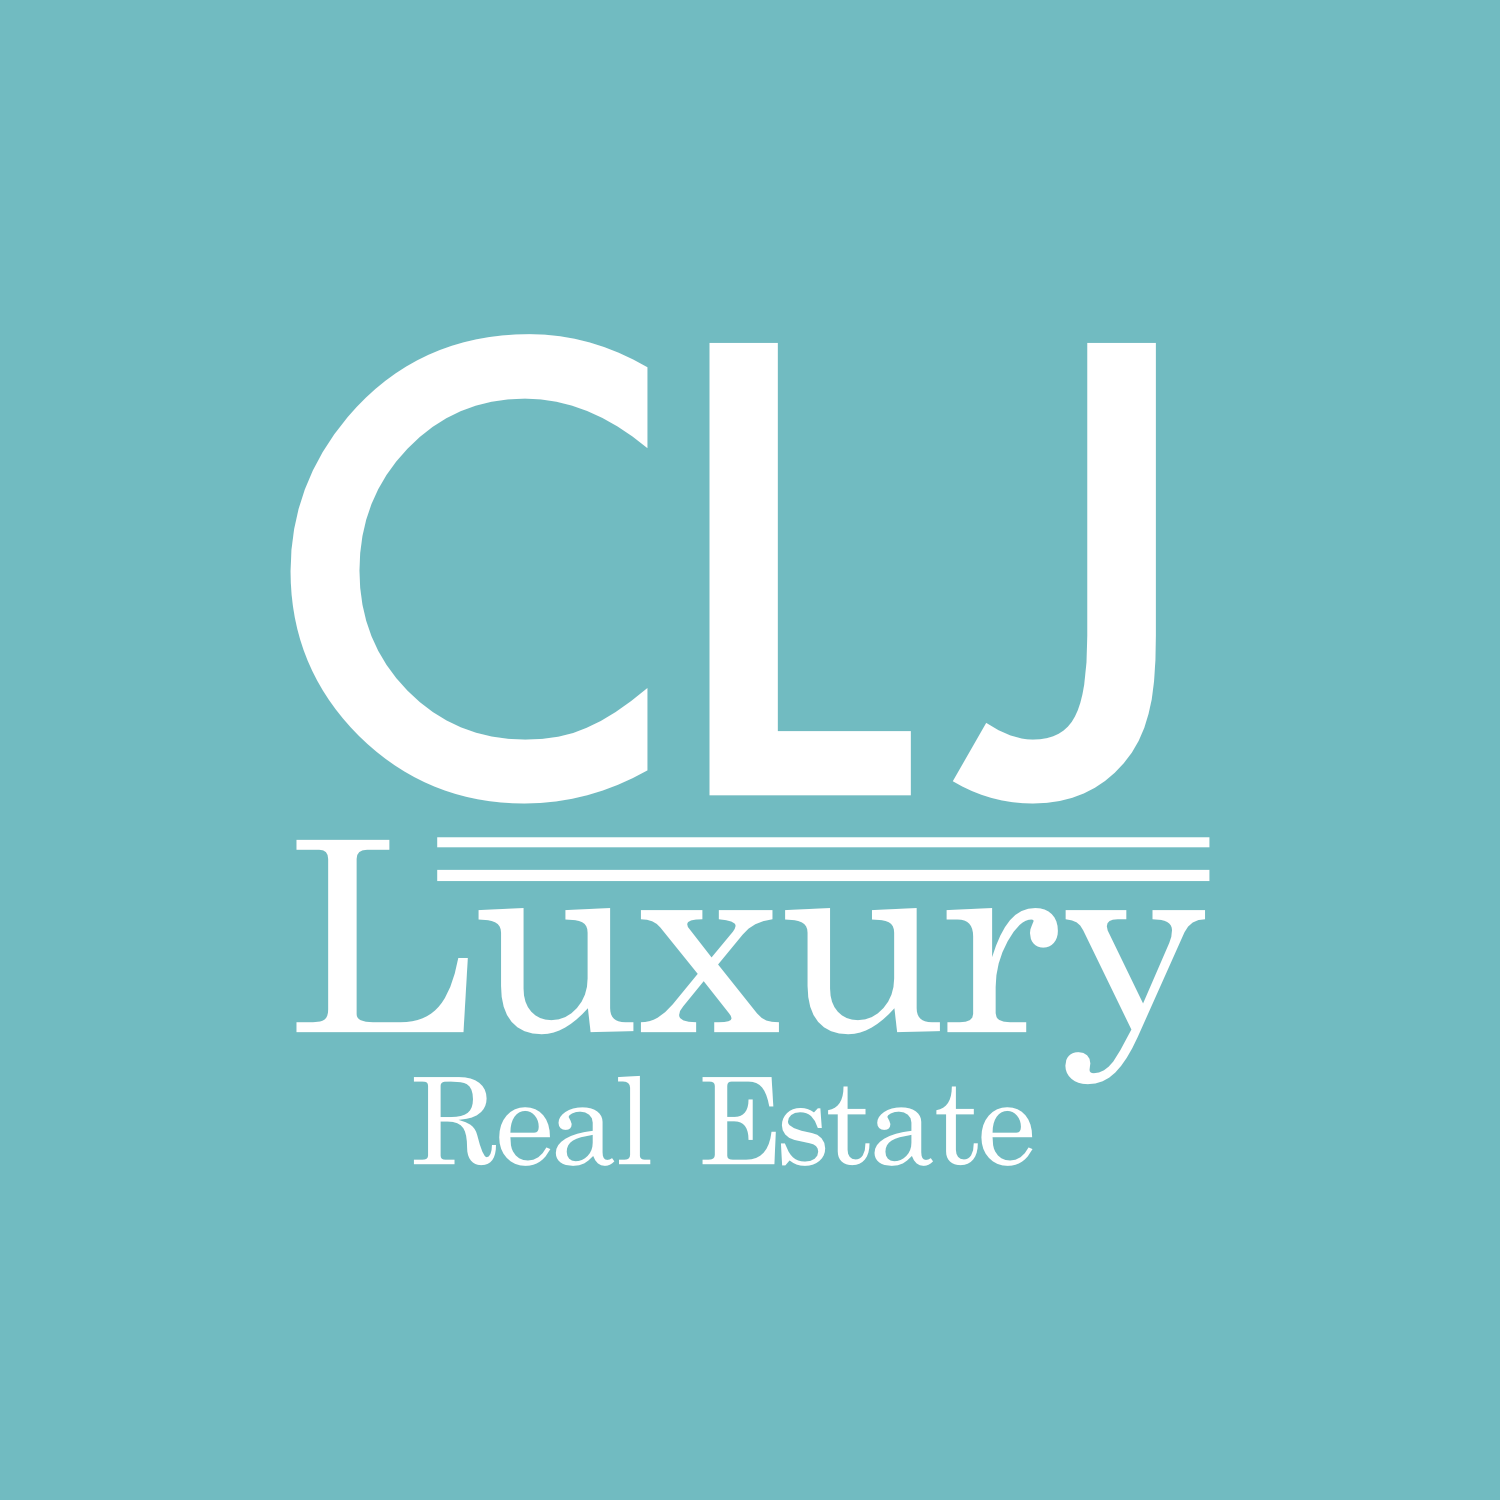 Luxury homes for sale in Vestavia Hills al